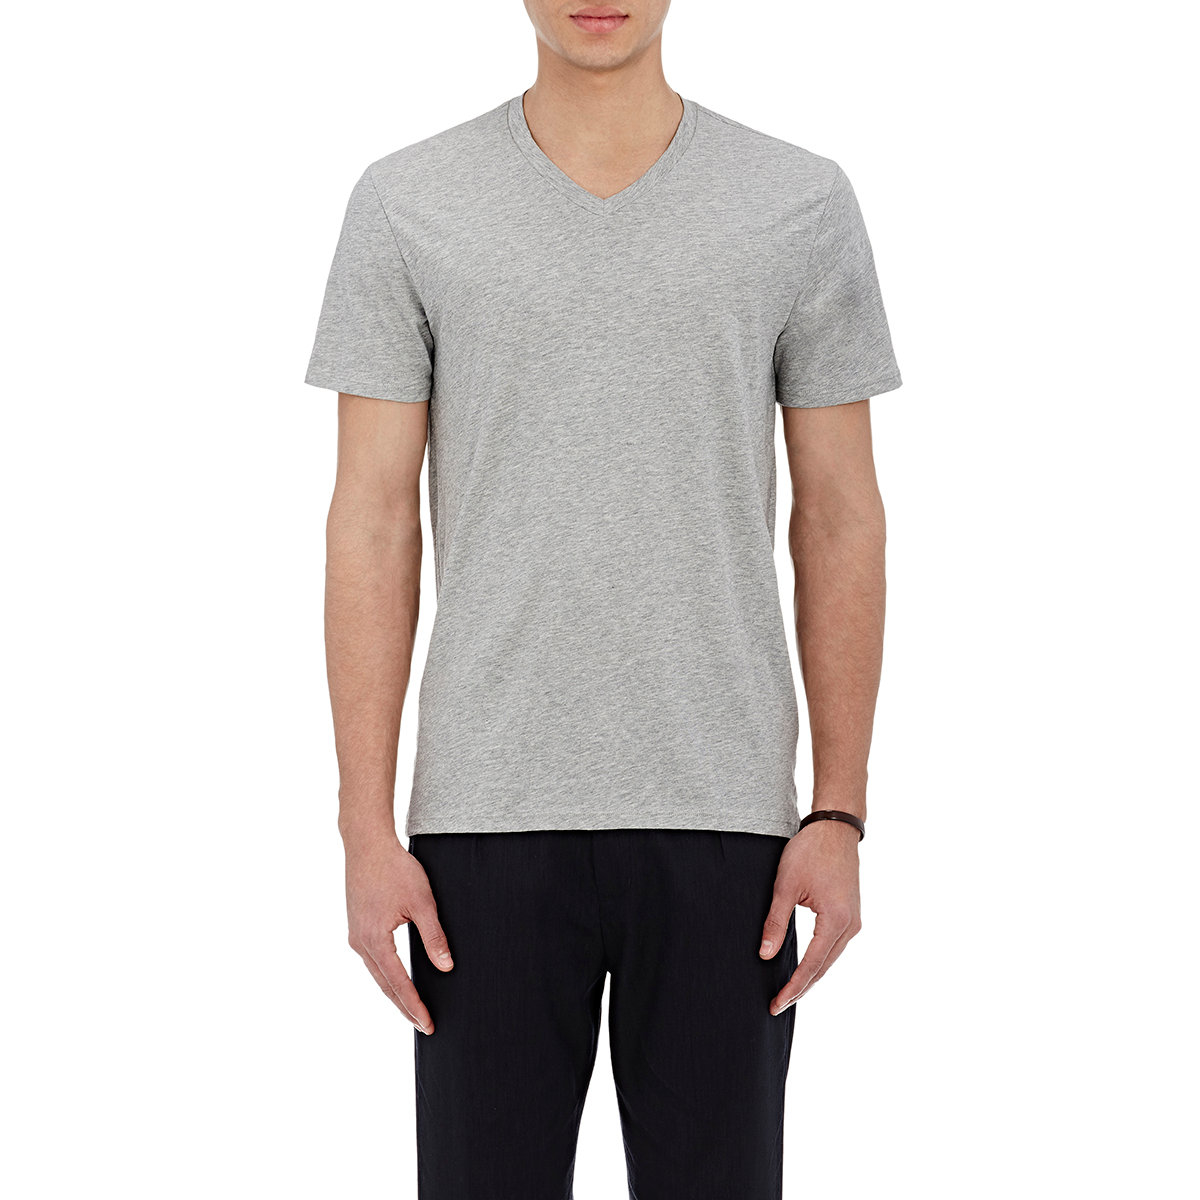 Vince men 39 s jersey v neck t shirt in gray for men grey for Vince tee shirts sale